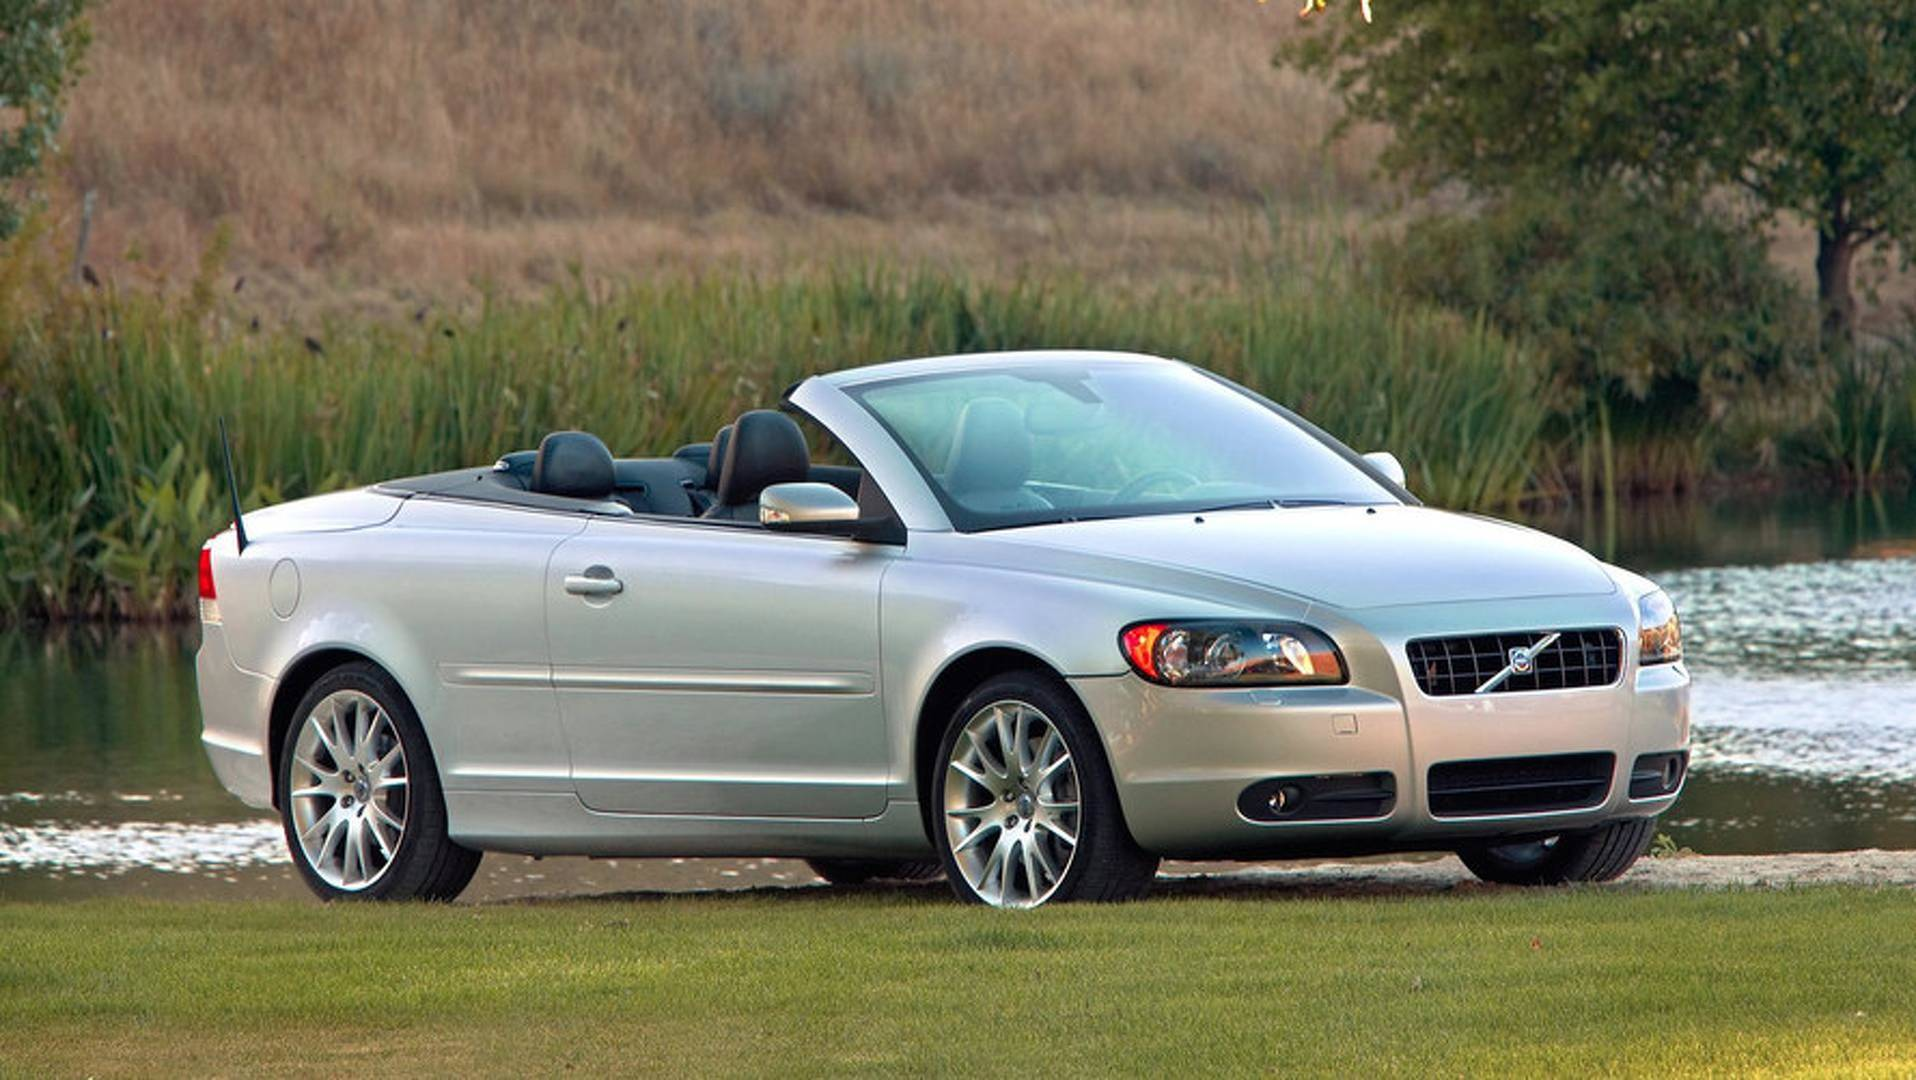 convertible diesel s metallic white coupe volvo sale available pearl in dorset no photos used d